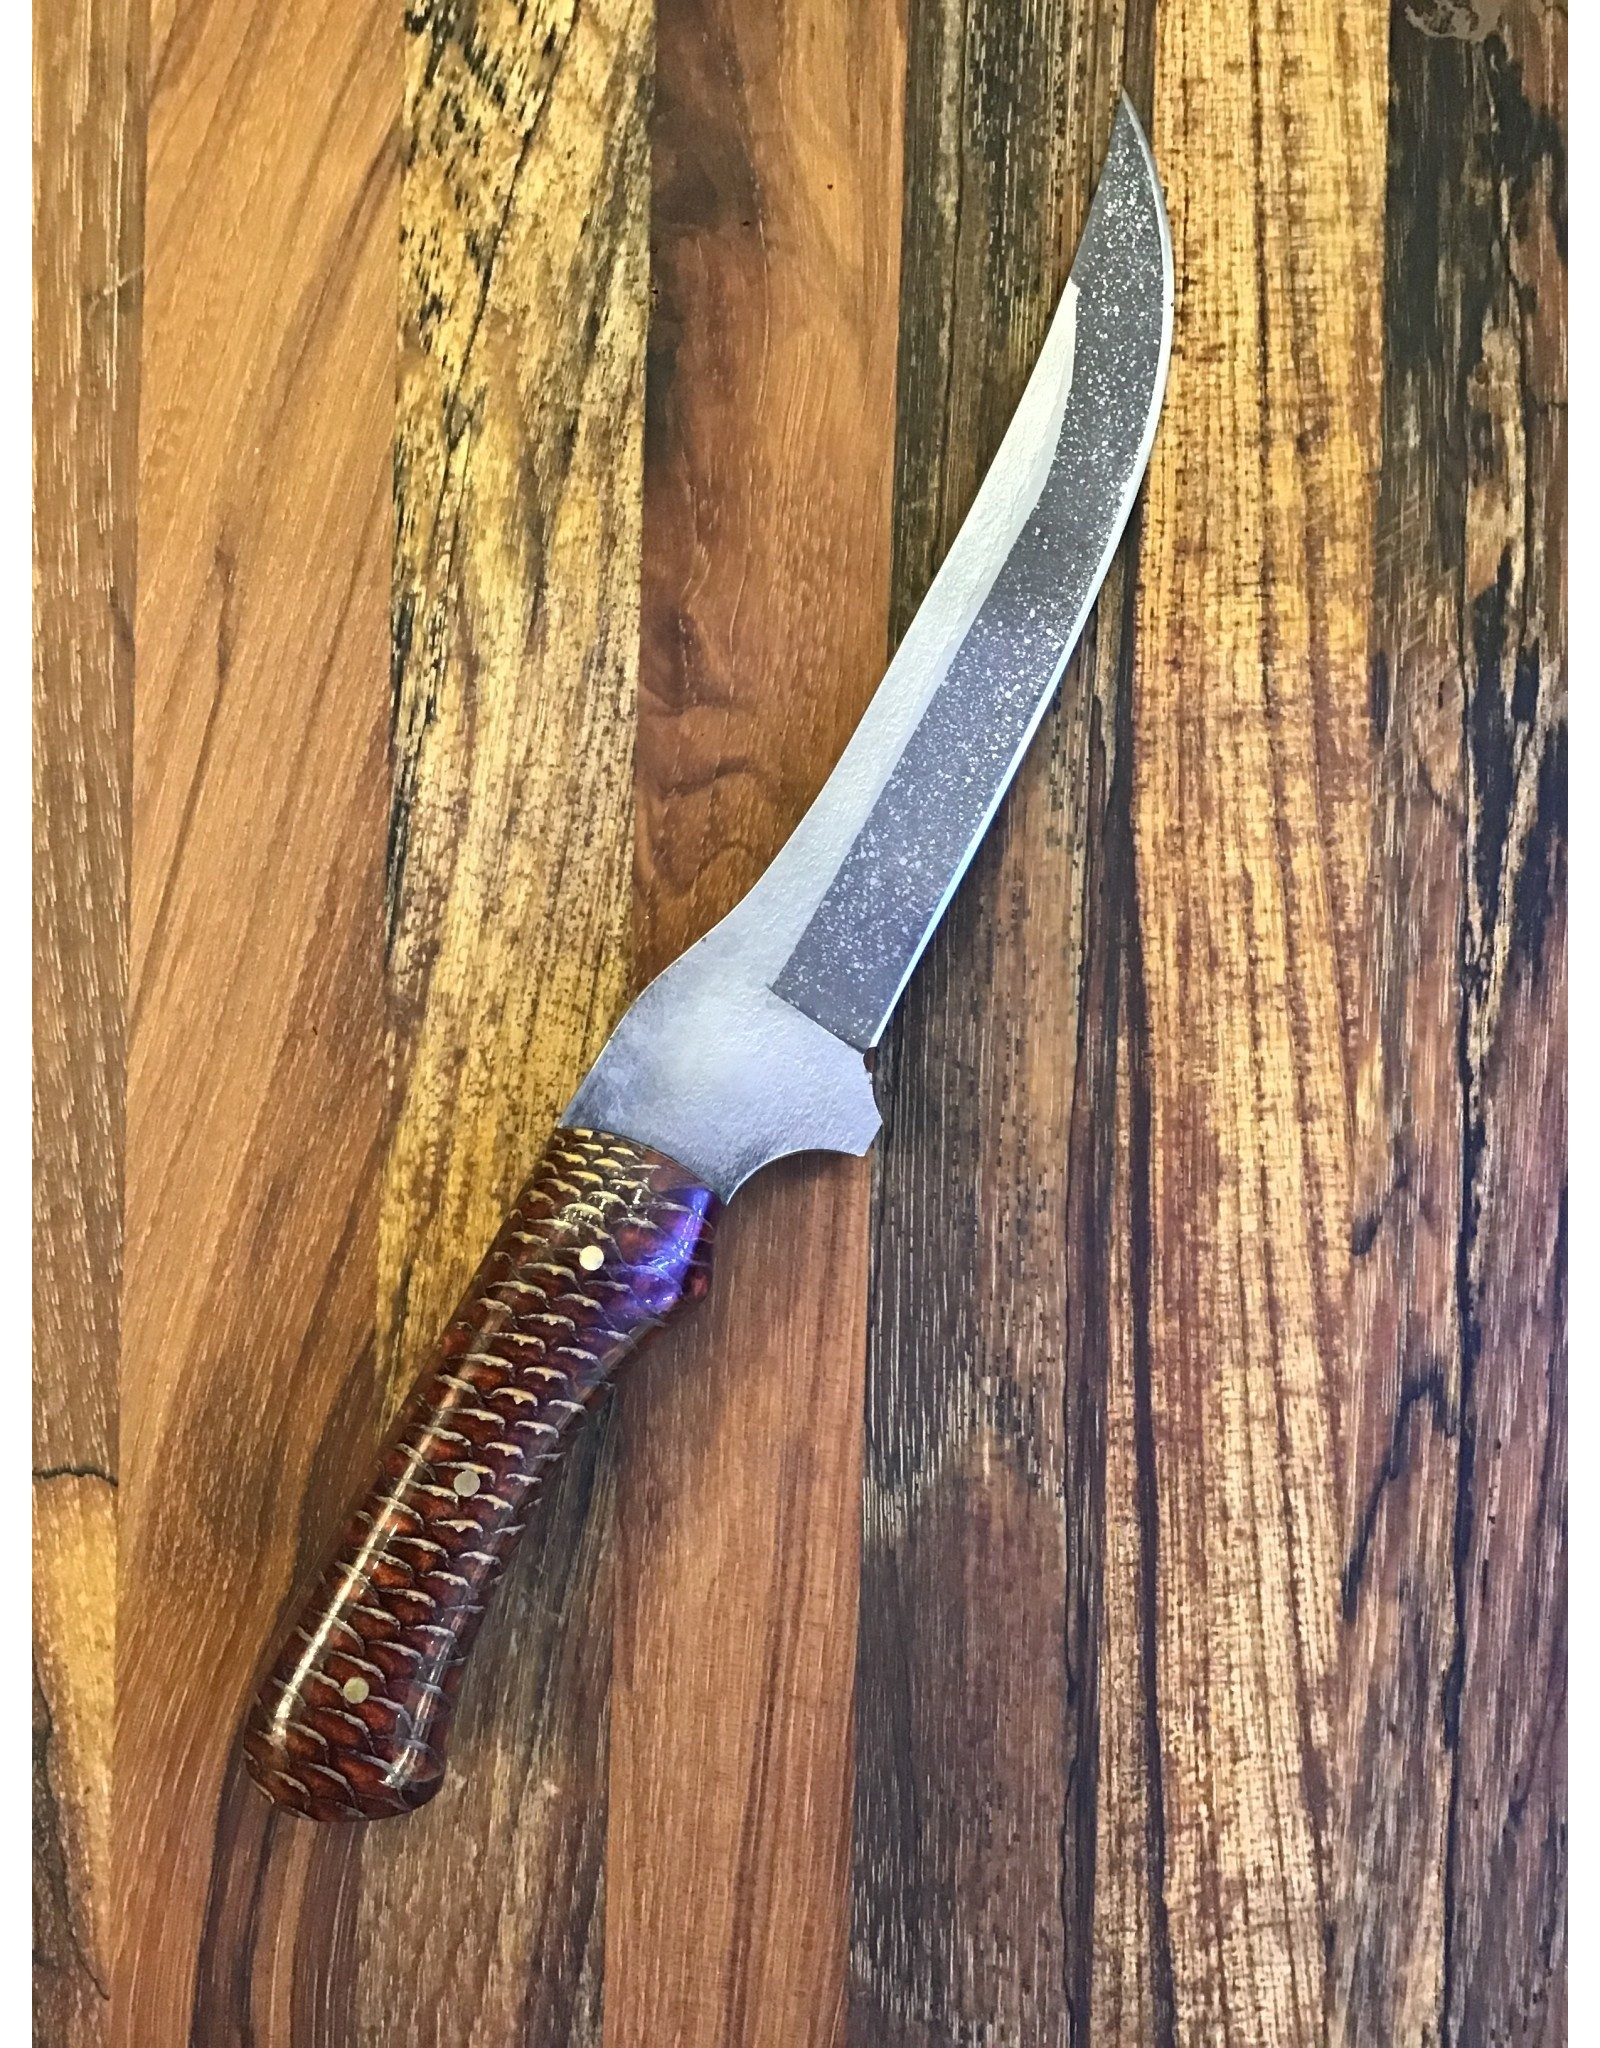 Serenity Boning Knife with Integral Guard and Red Pine Cone Handle